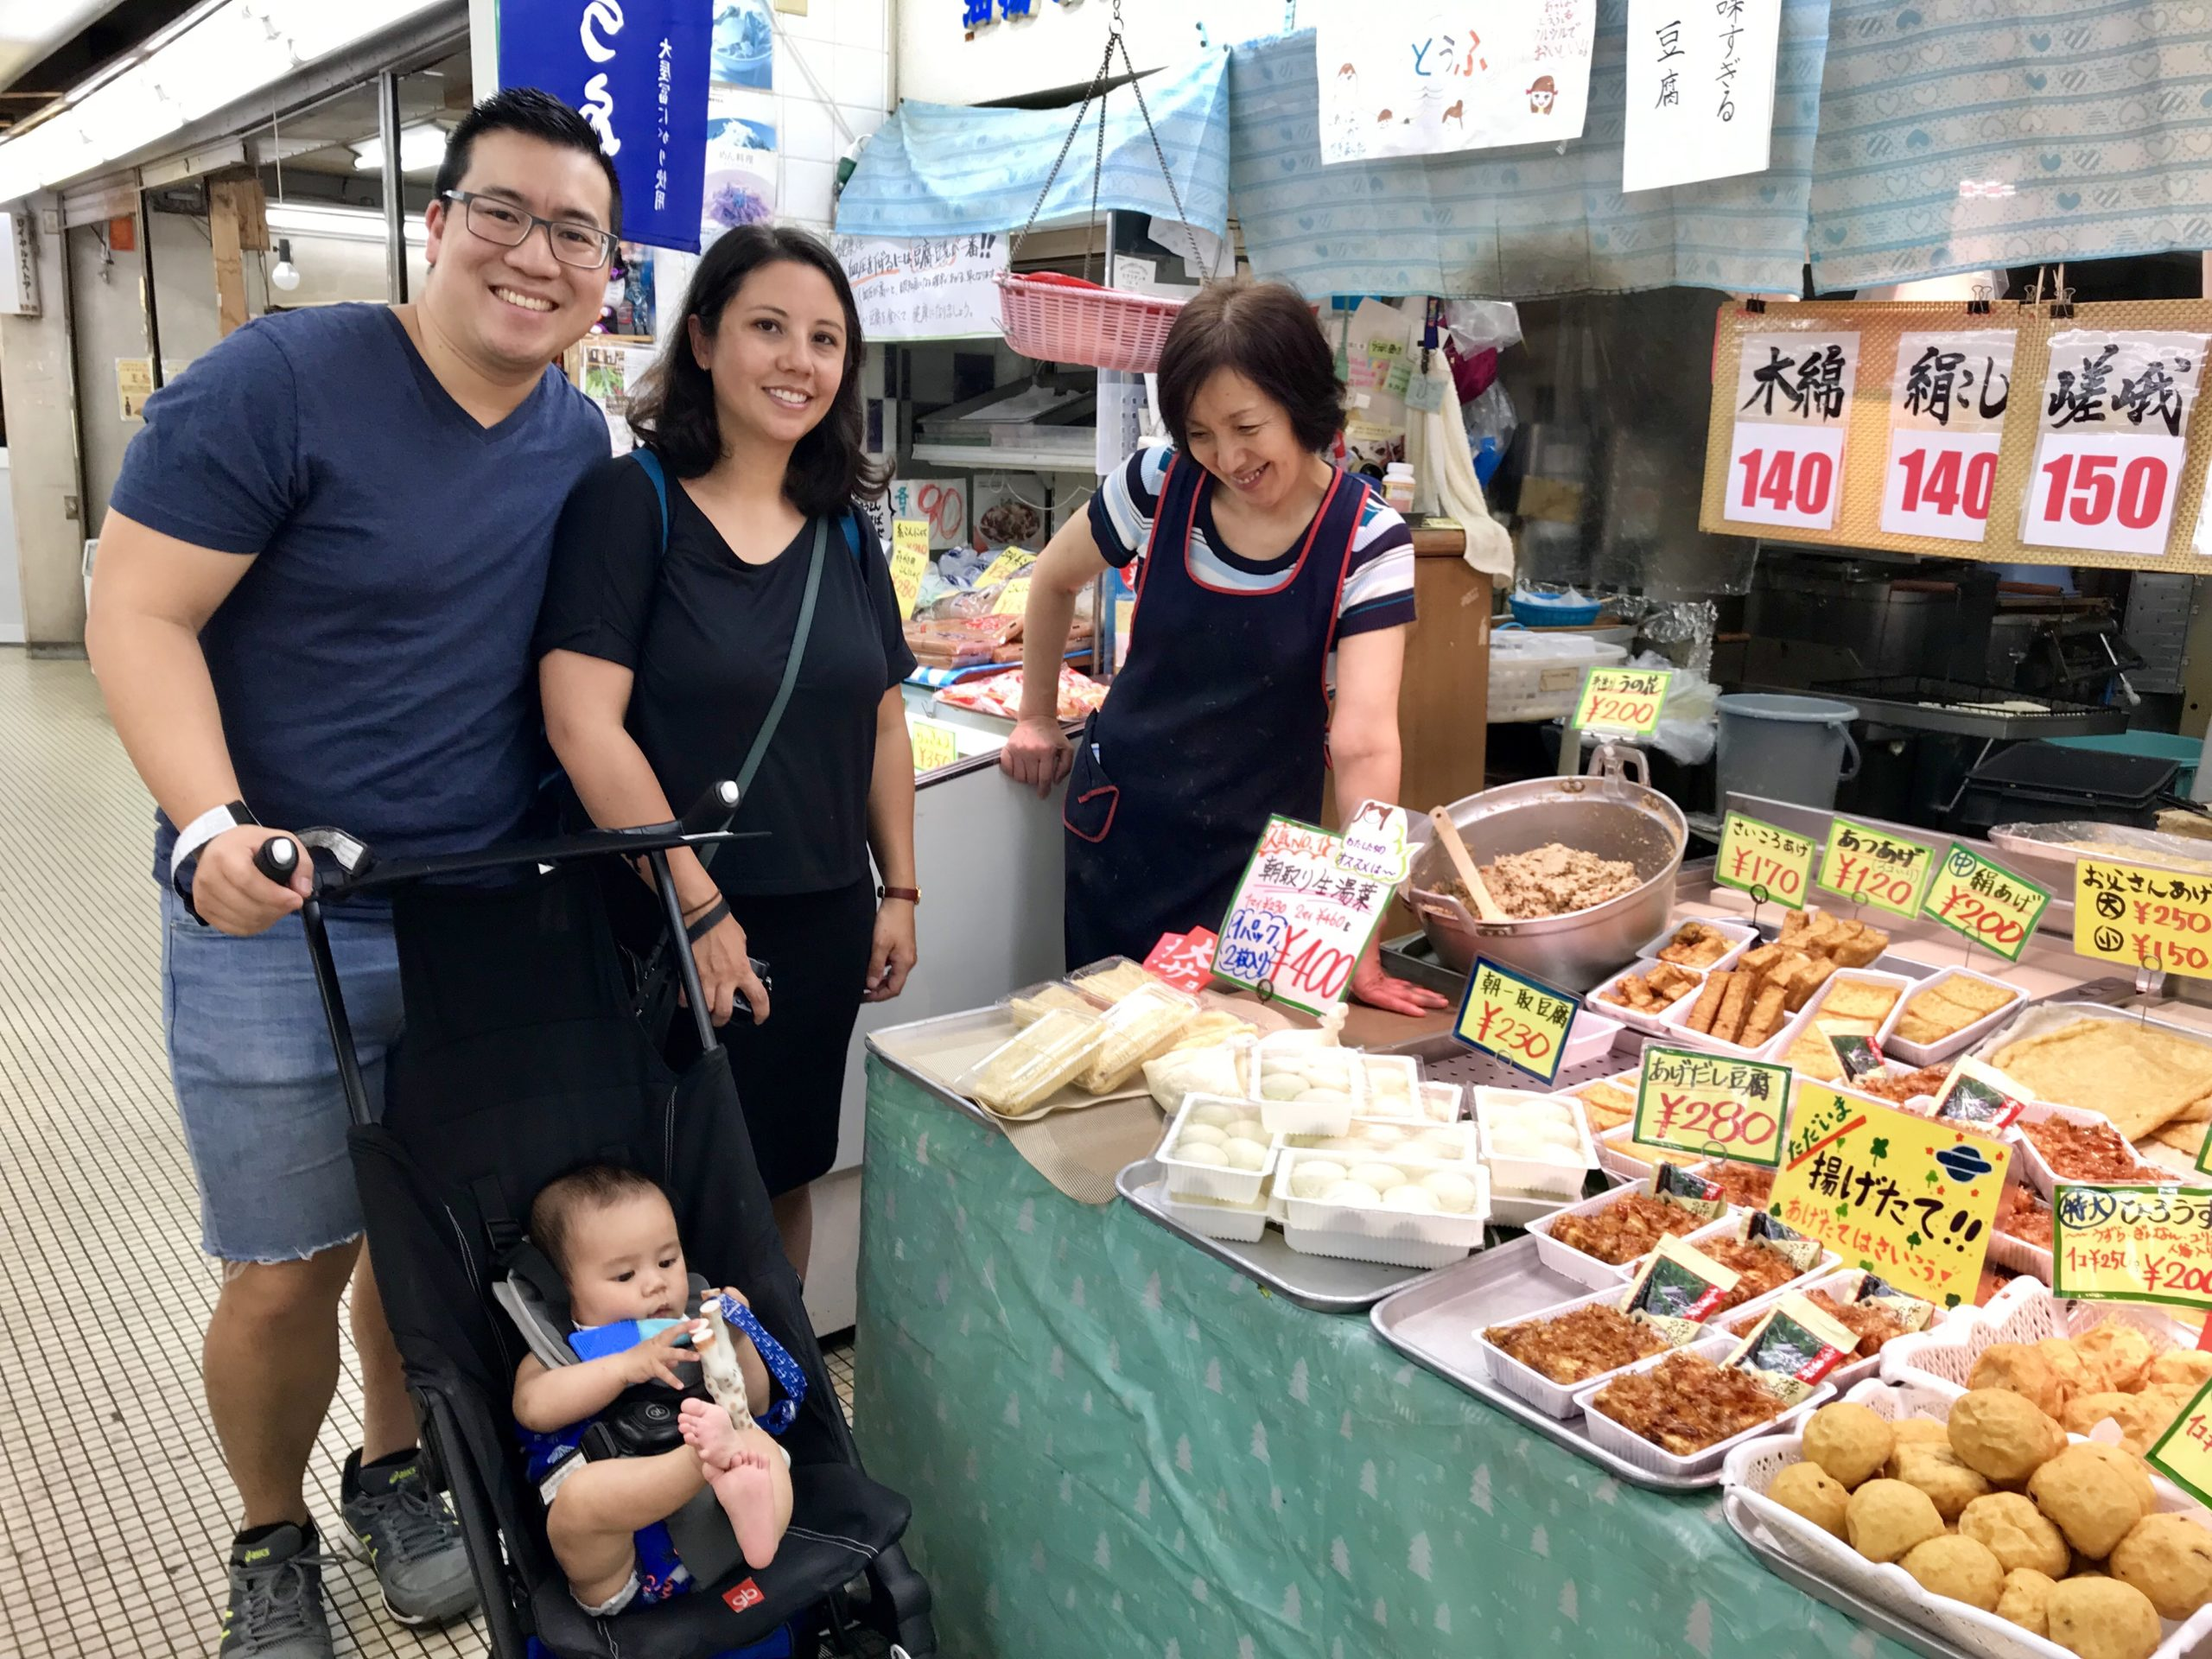 Mum, dad and baby in stroller with tofu seller at market